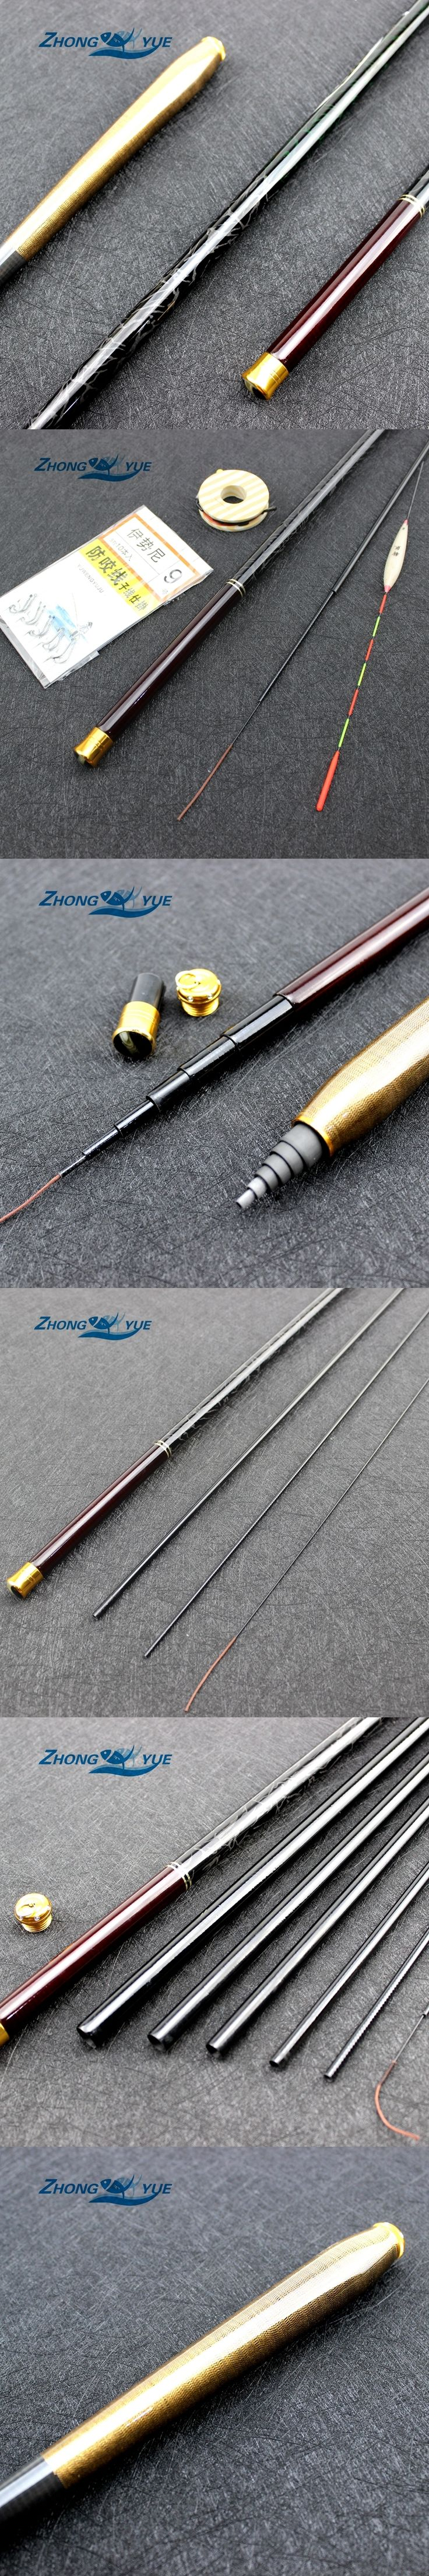 2017NEW 3.6M-7.2M Carbon Fiber Telescopic Fishing Rod Set Super Hard Ultra Light Carp Fishing Pole Stream Fishing Rod